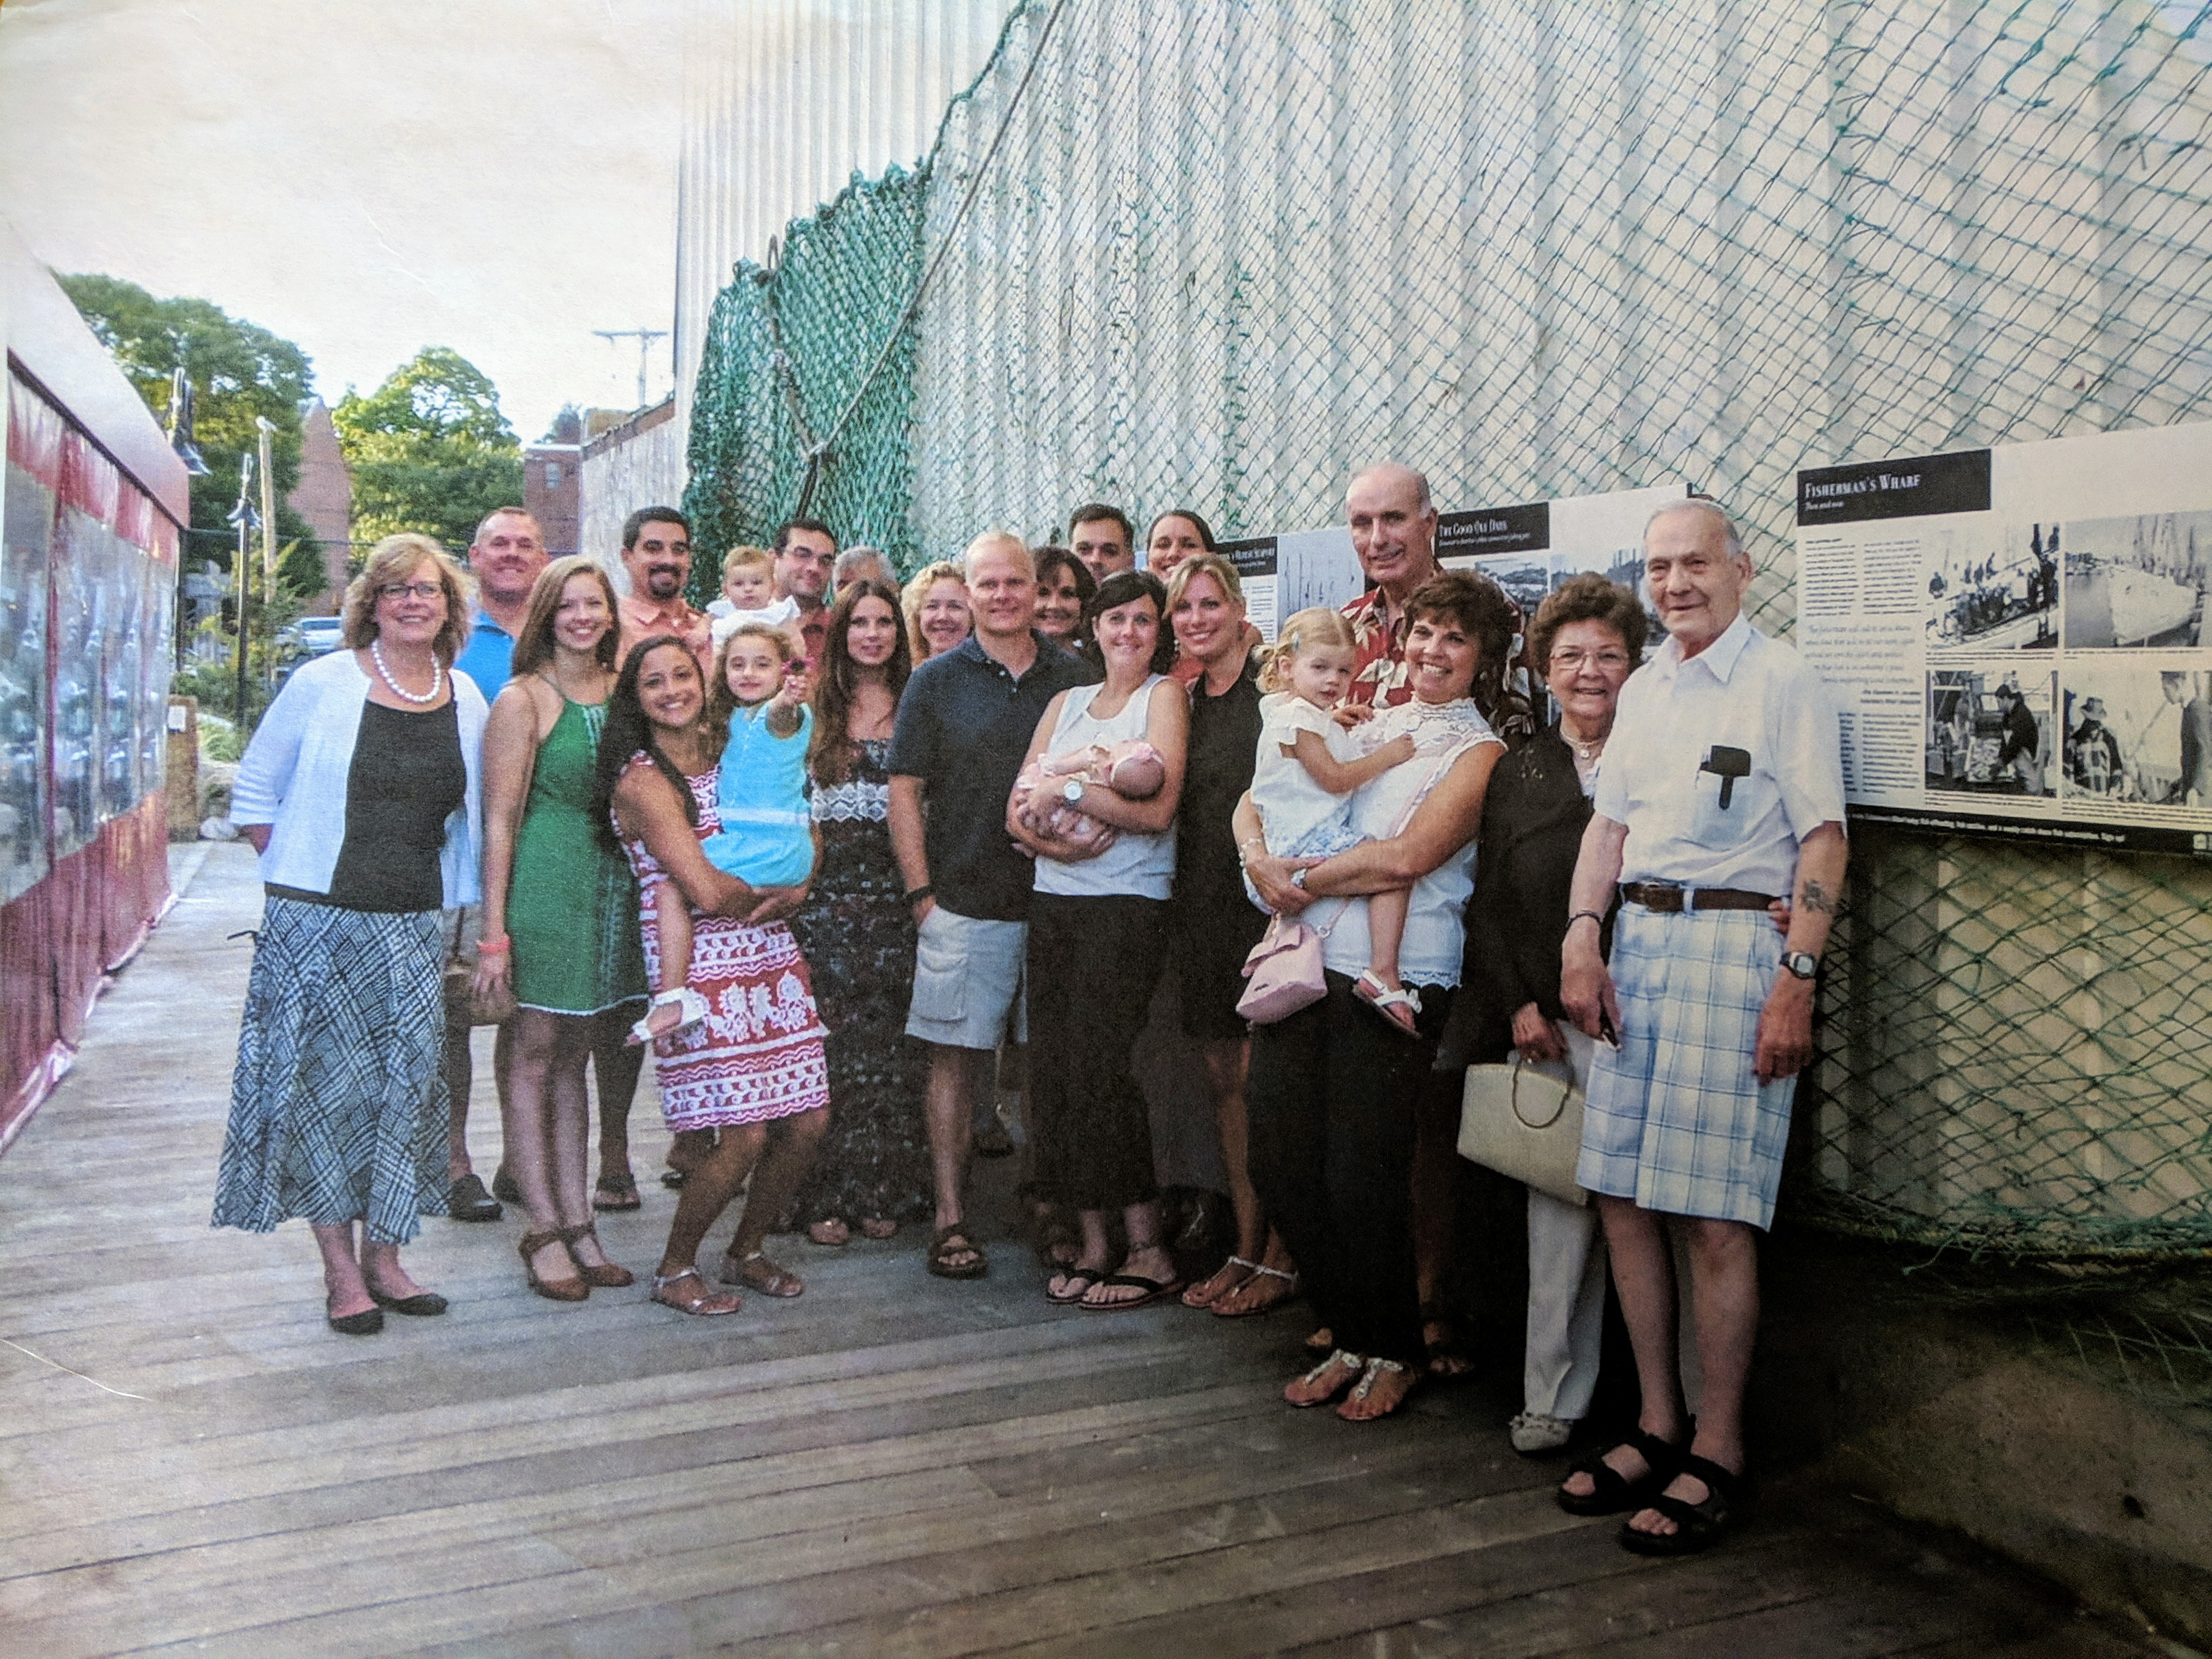 2015 Manny and Joanna Carrancho, Trib and Ken Joyce and extended family visiting from VA and elsewhere for reunion stop at the HarborWalk exhibition Fishermans Wharf  to see manny panel.jpg